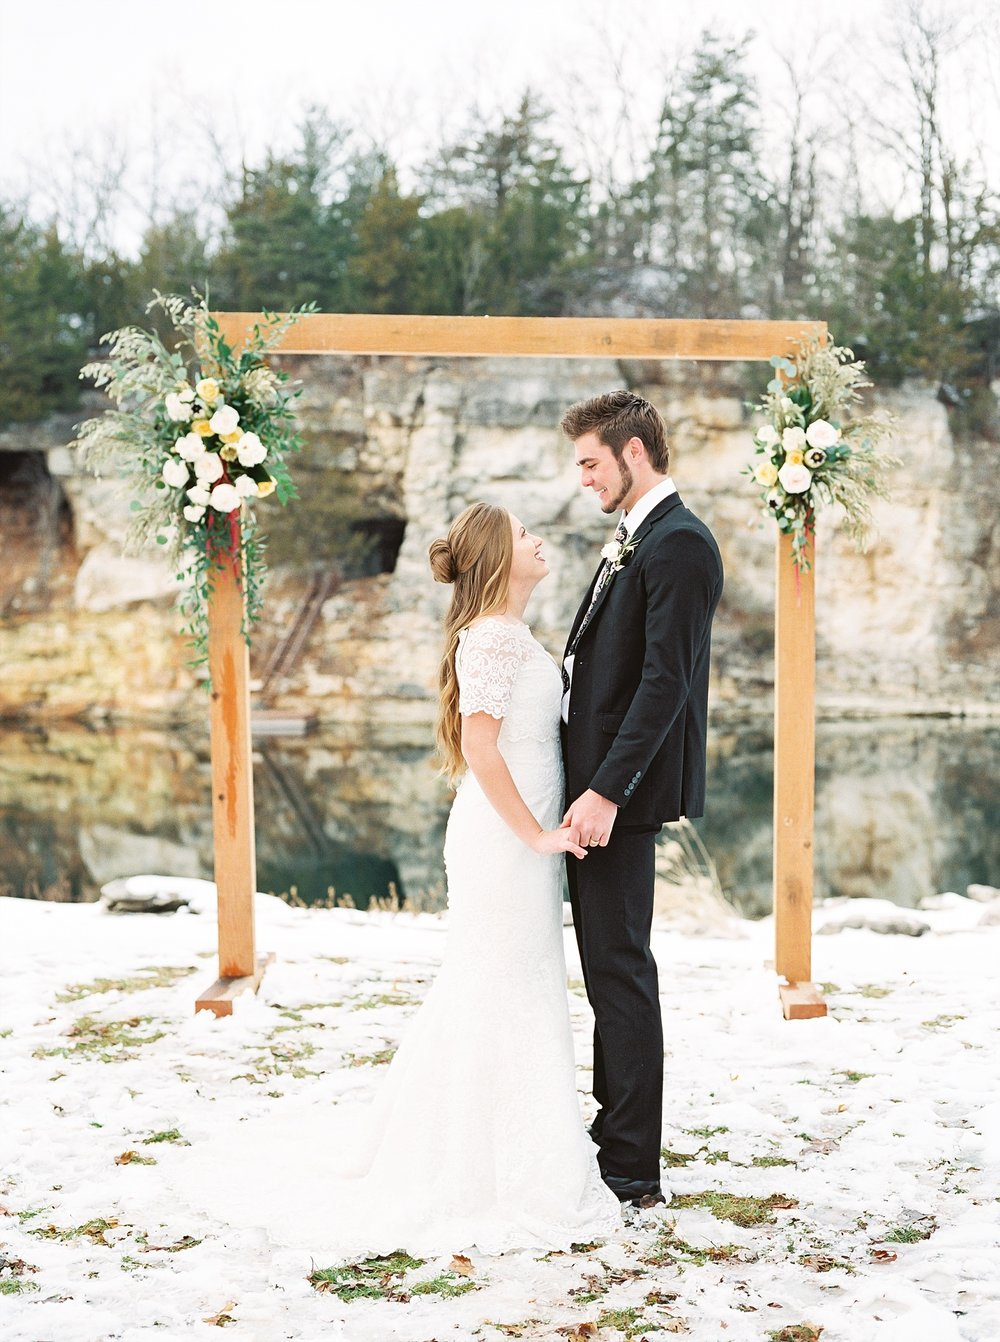 Snowy Winter Wedding at Wildcliff Events Lake With Earthy Jewel Tones and Organic Refined Style by Kelsi Kliethermes Photography Kansas City Missouri Wedding Photographer_0114.jpg